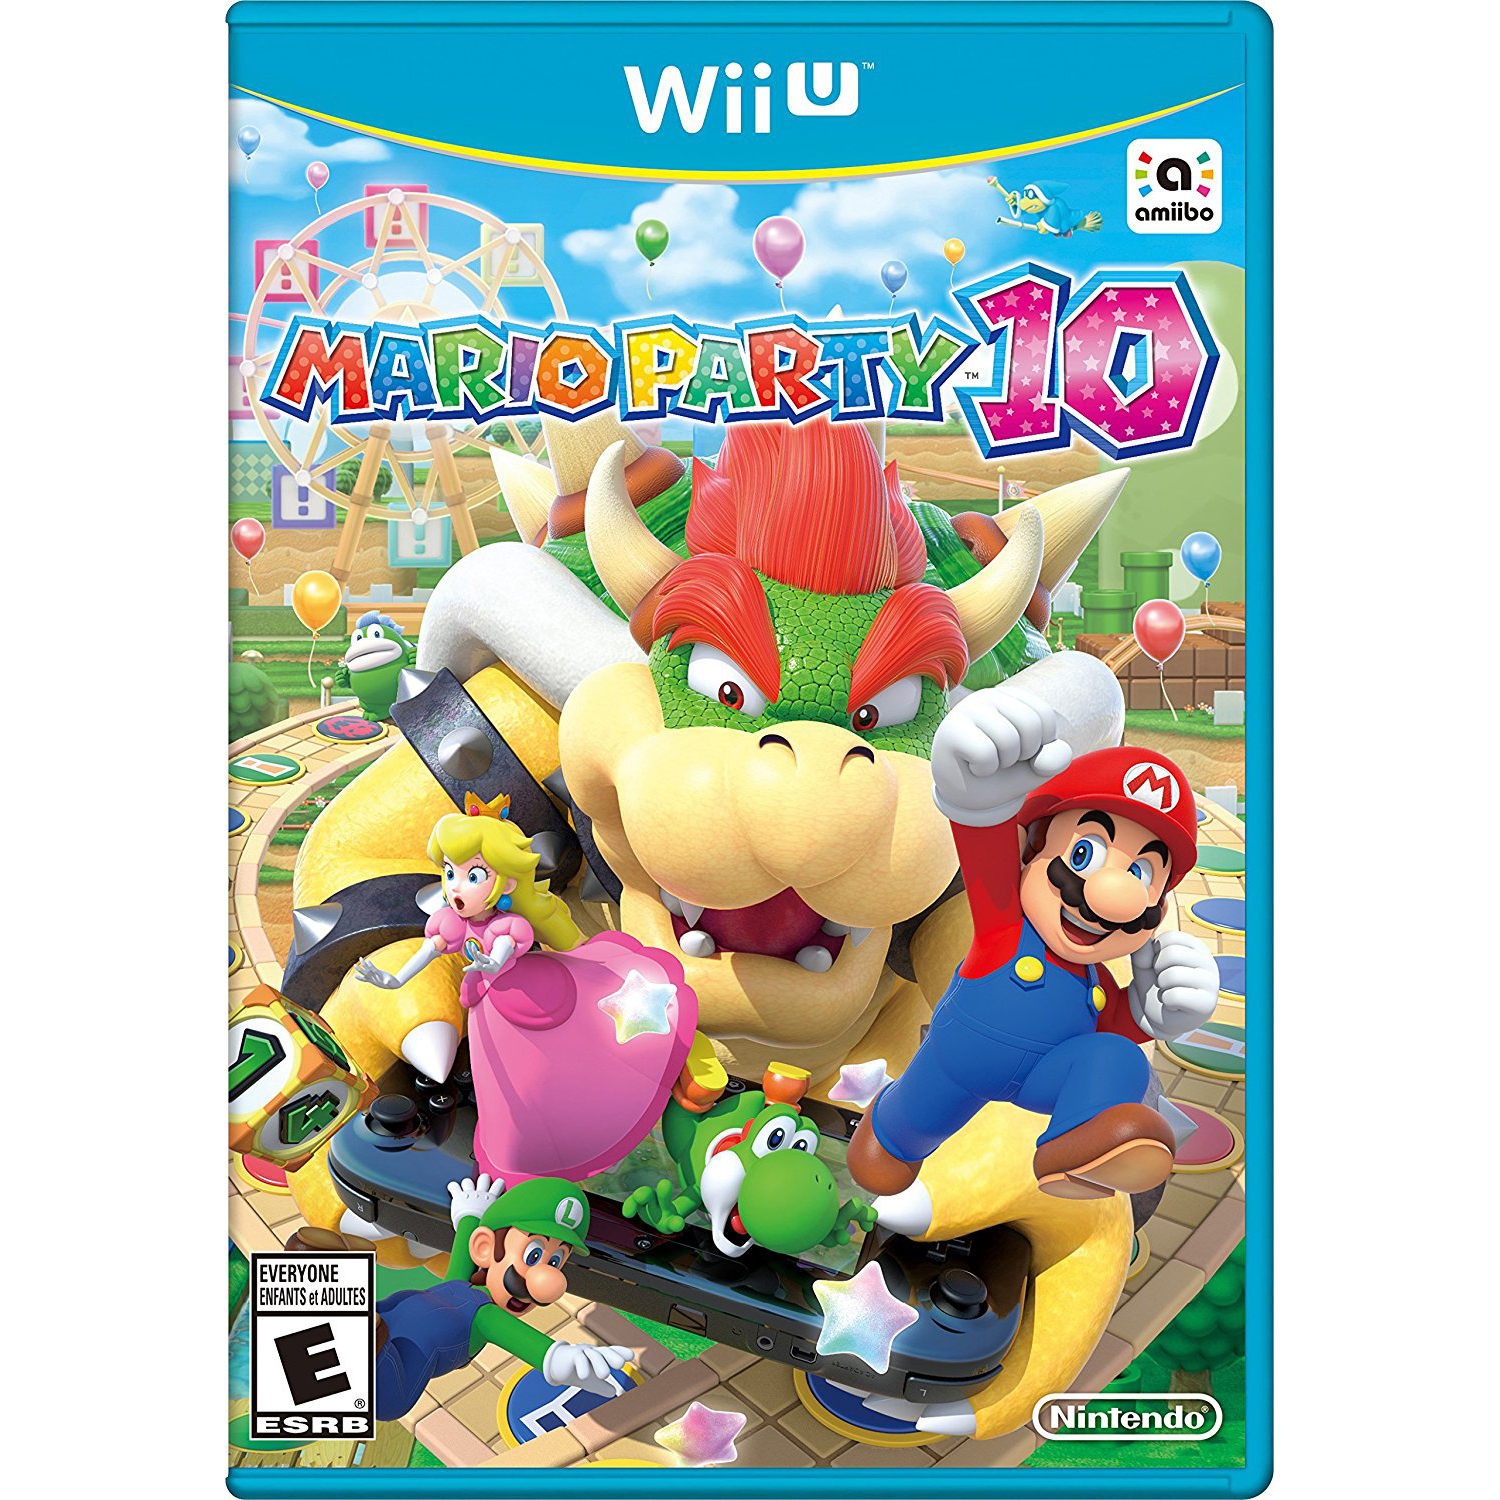 Mario Party 10, Nintendo, WIIU, [Digital Download], 0004549666041